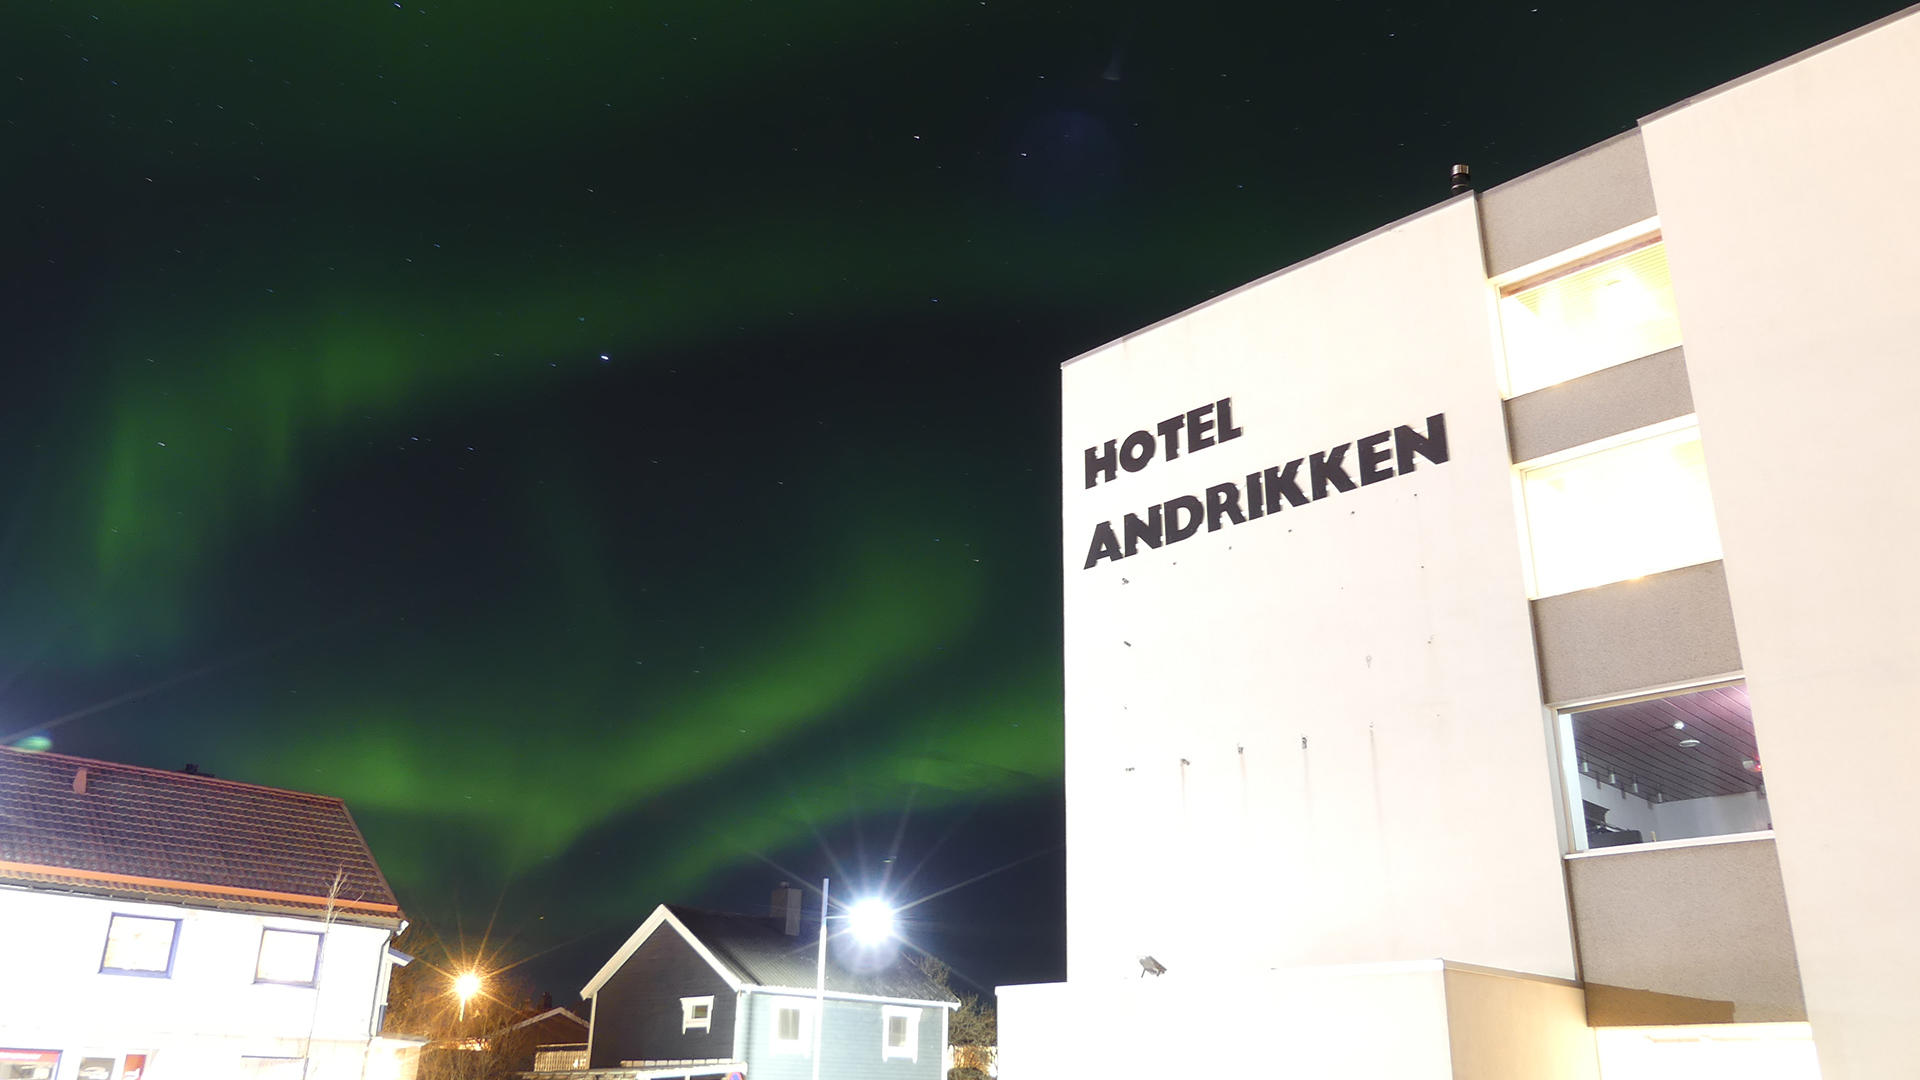 Thon Hotel Andrikken_Exterior with Northern Lights